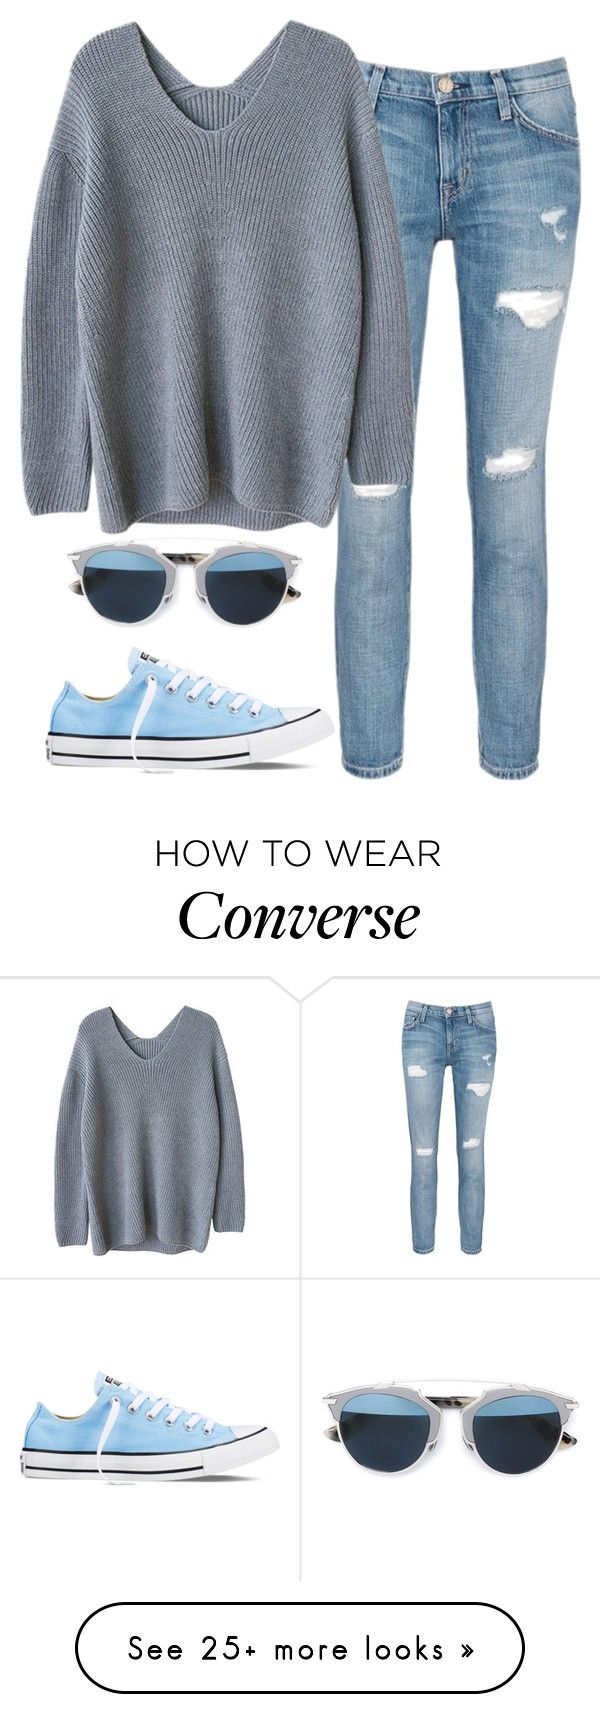 """Blue dayz!"" by hanny-vandy on Polyvore featuring Current/Elliott, Converse, Christian Dior, women's clothing, women's fashion, women, female, woman, misses and juniors"